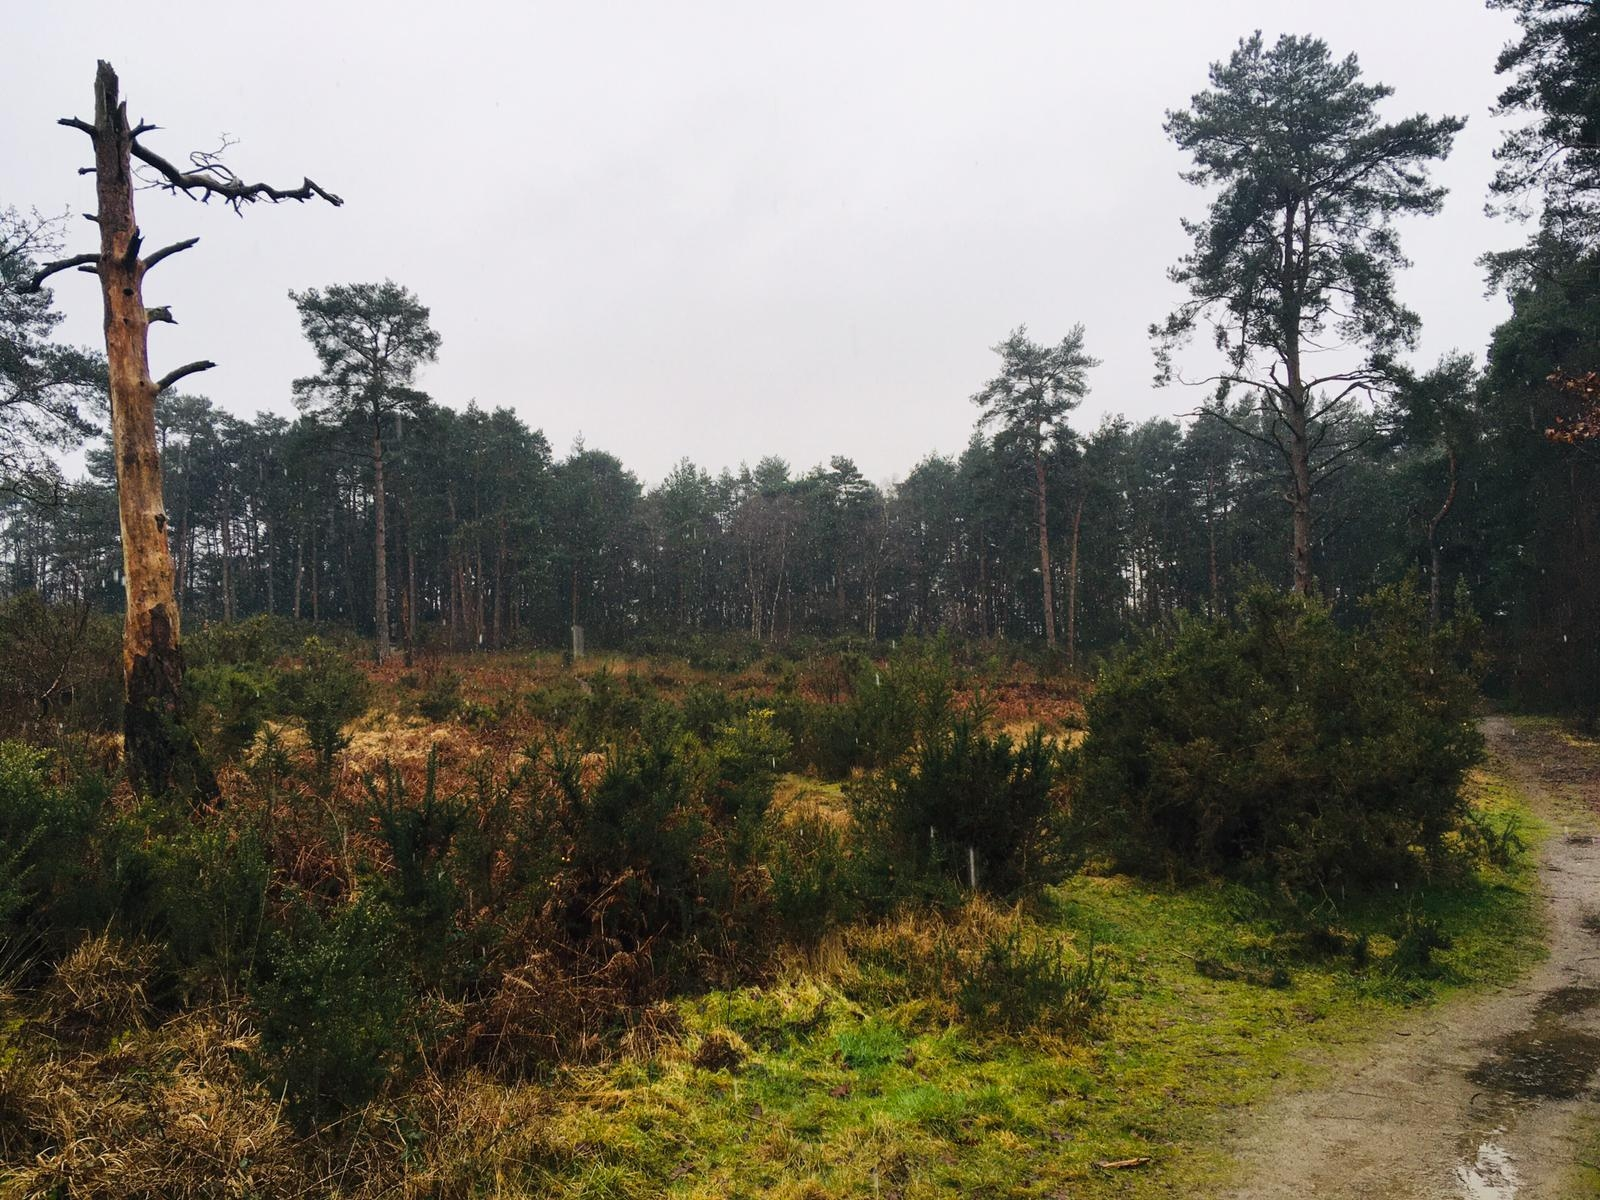 Late January in the Hogmoor Inclosure